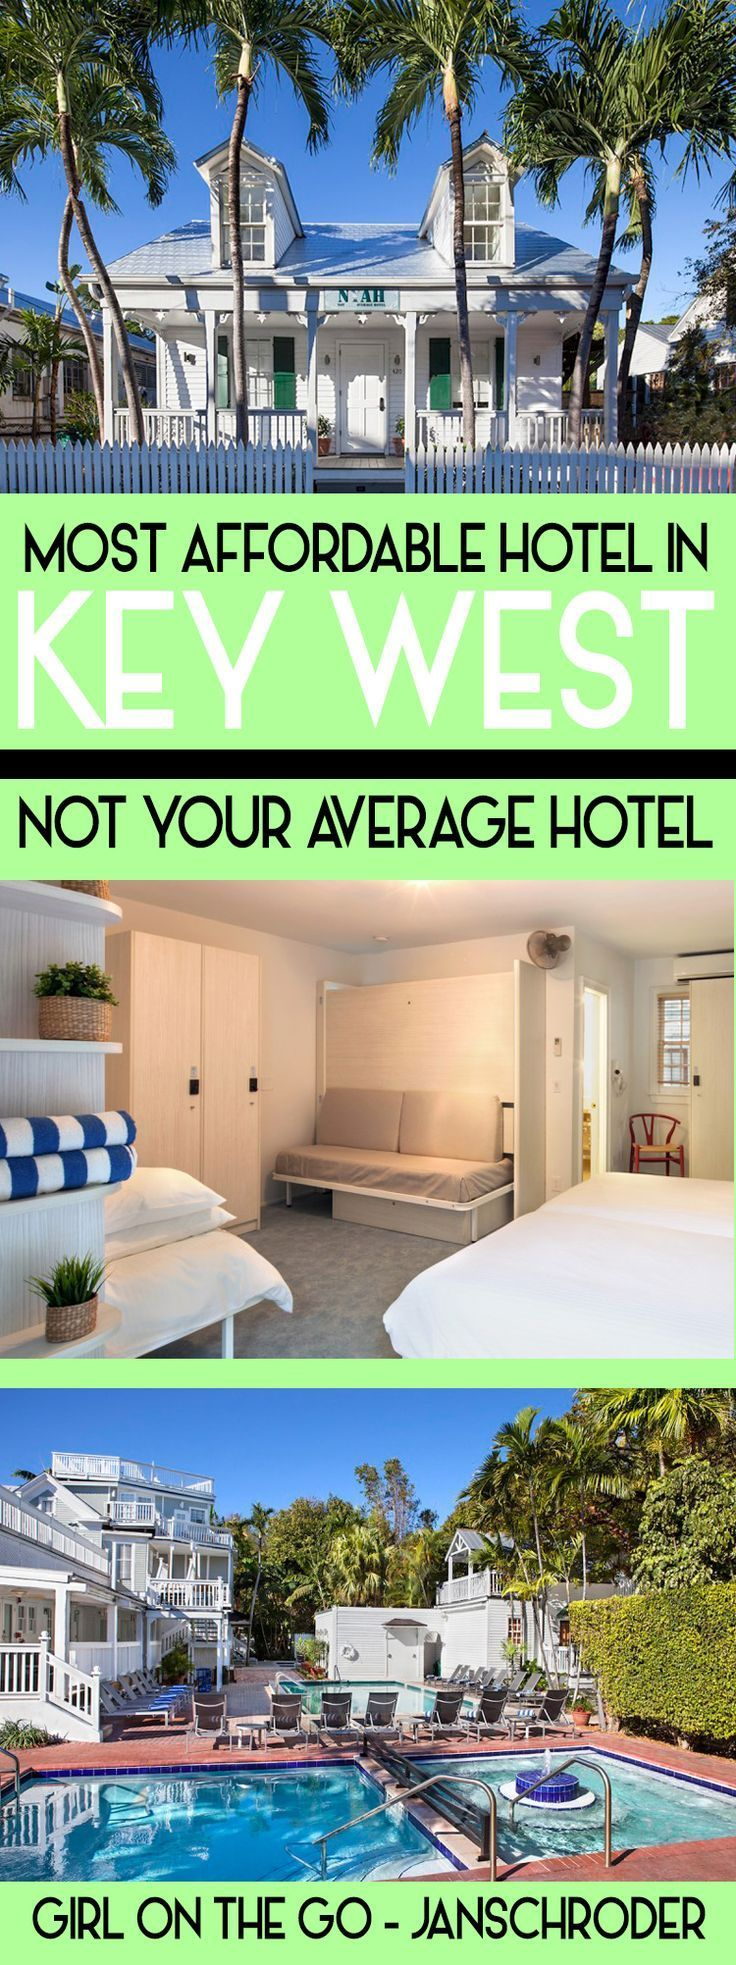 Hangout in Keywest, Florida in style without breaking the bank at this amazing hotel, Not Your Average Hotel. ***************************************** Key West Florida   Key West Vacation   USA travel   USA destinations #travel #travelblogger #traveller #traveltips #adventure #backpacking #destination #backpack